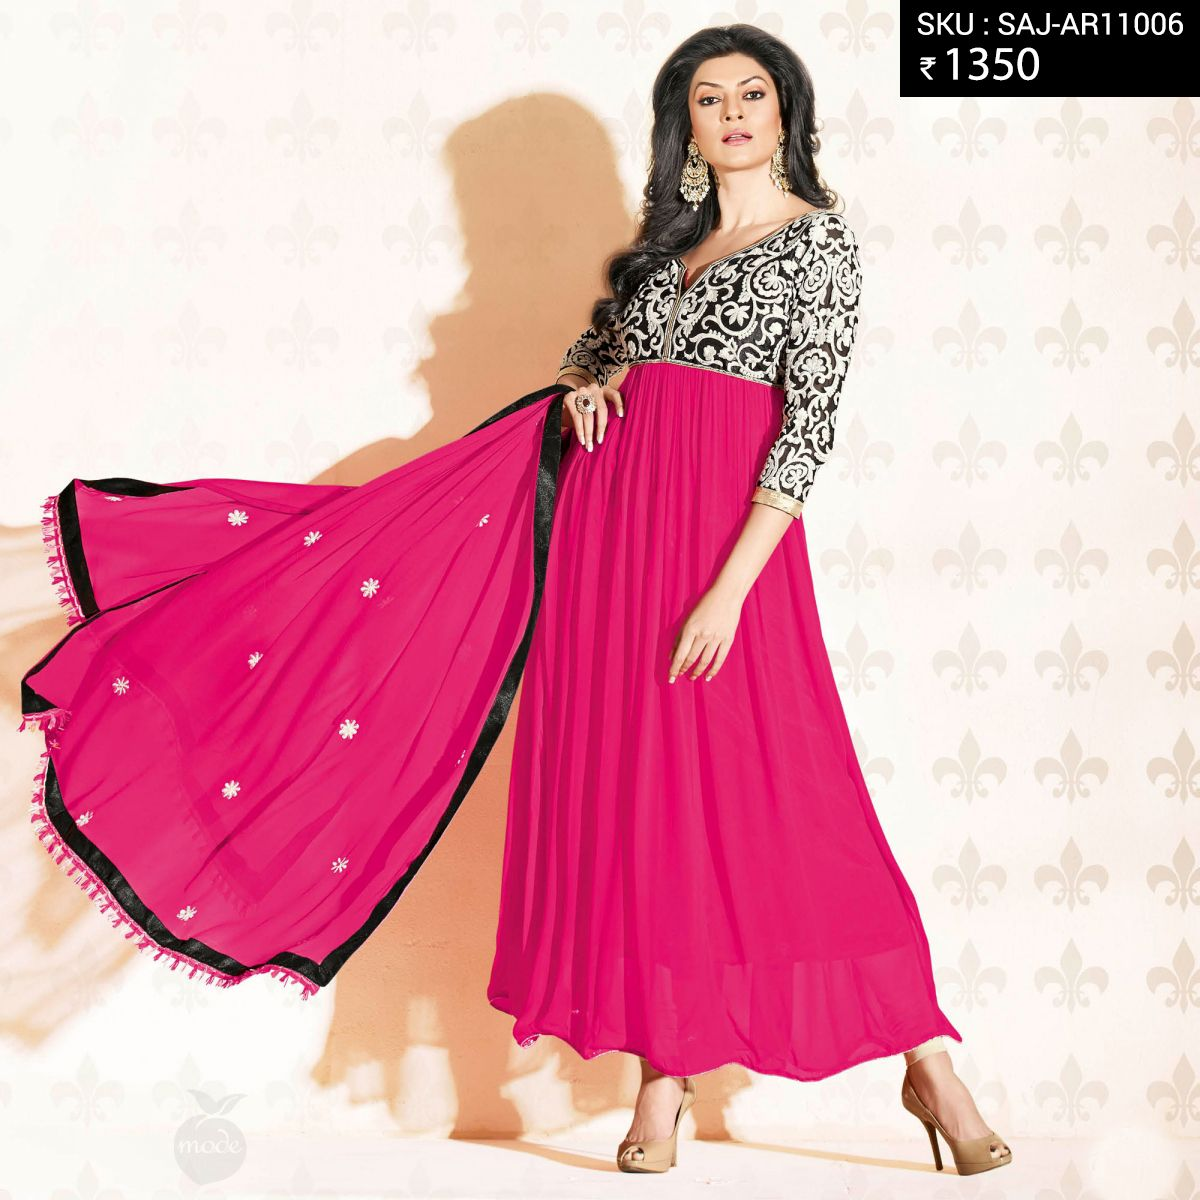 Be as gorgeous as #sushmitasen in these Stunning Anarkalis at just 1350/-   #sushmitasen #pink #red #blue #black #fashion #bollywood #musthave #peachmode #getitnow #piniit #pins #boards #fashionboards #women